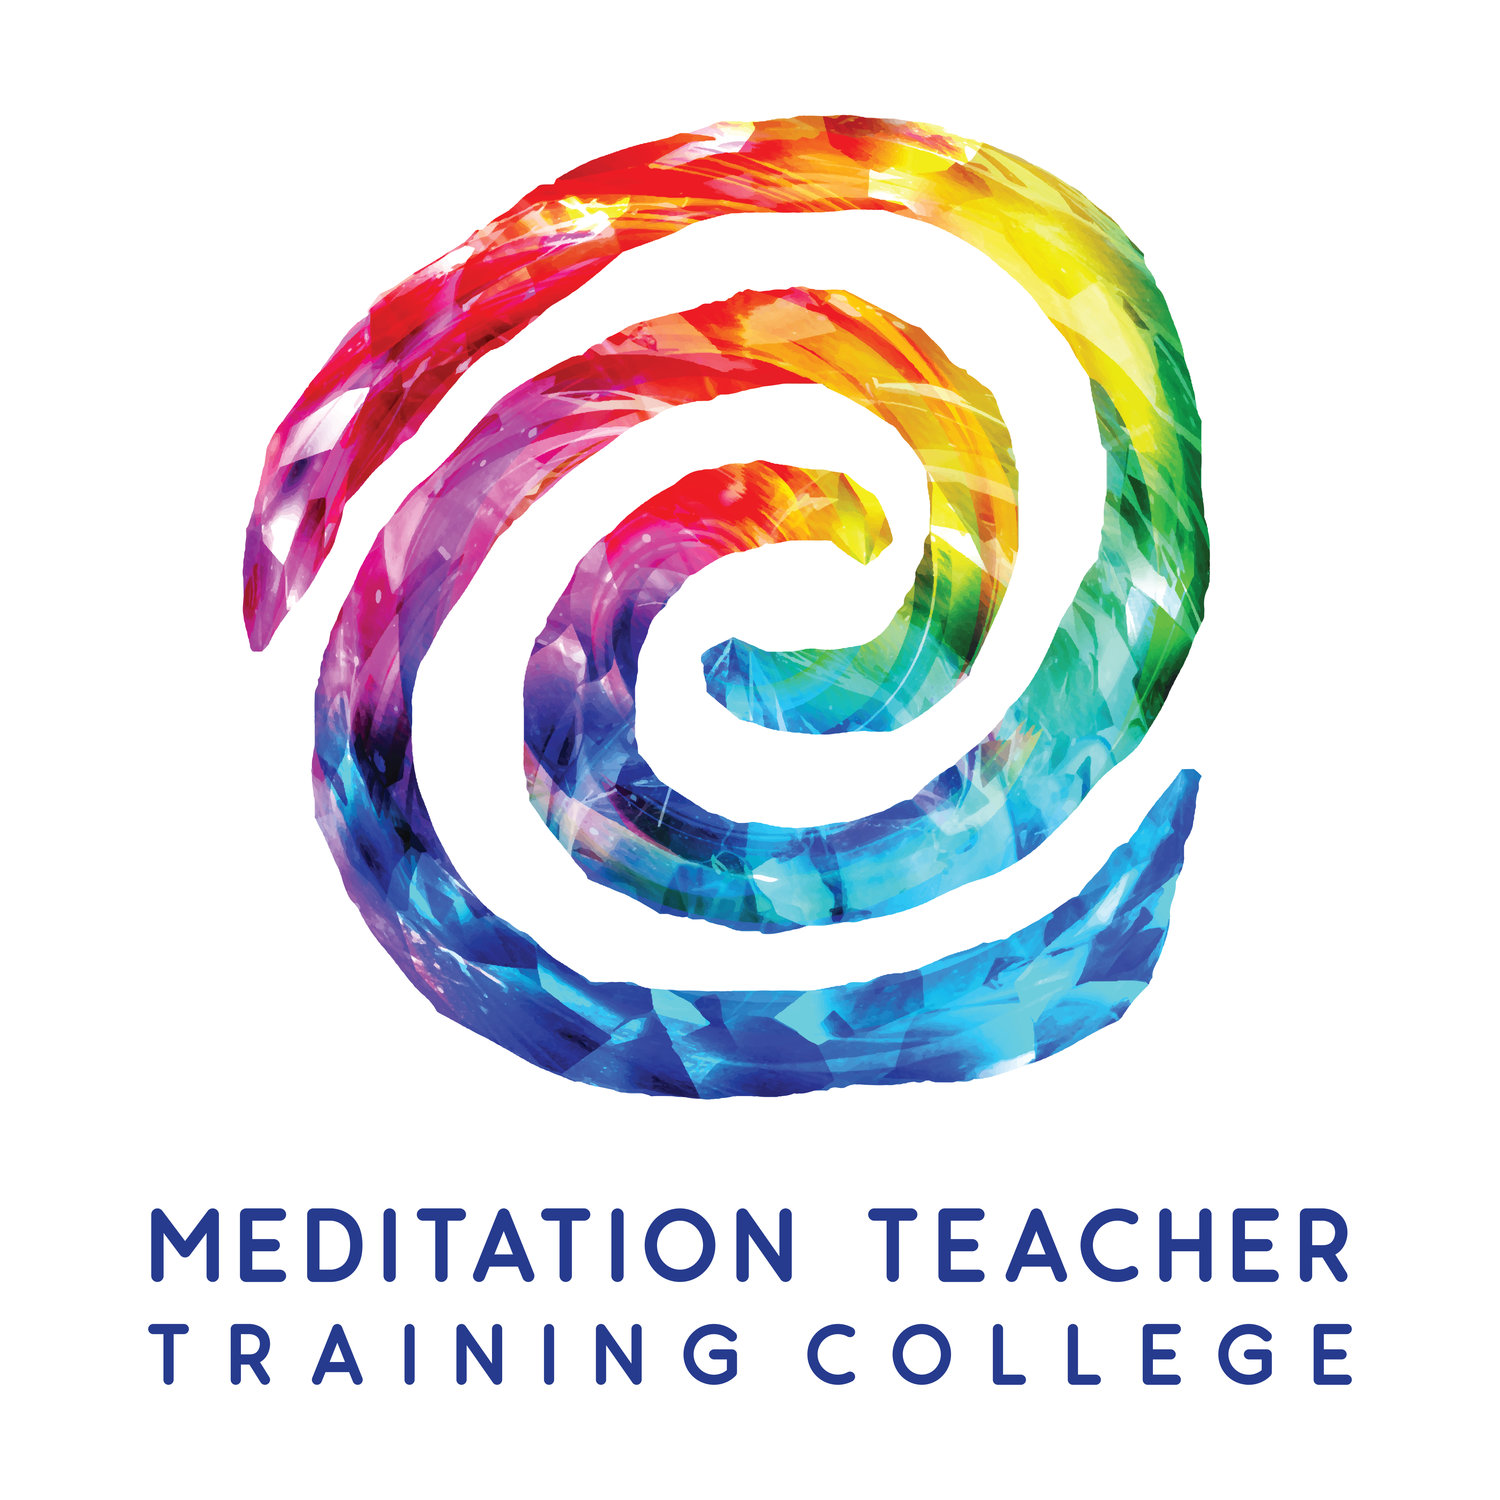 Meditation Teacher Training College Campbelltown